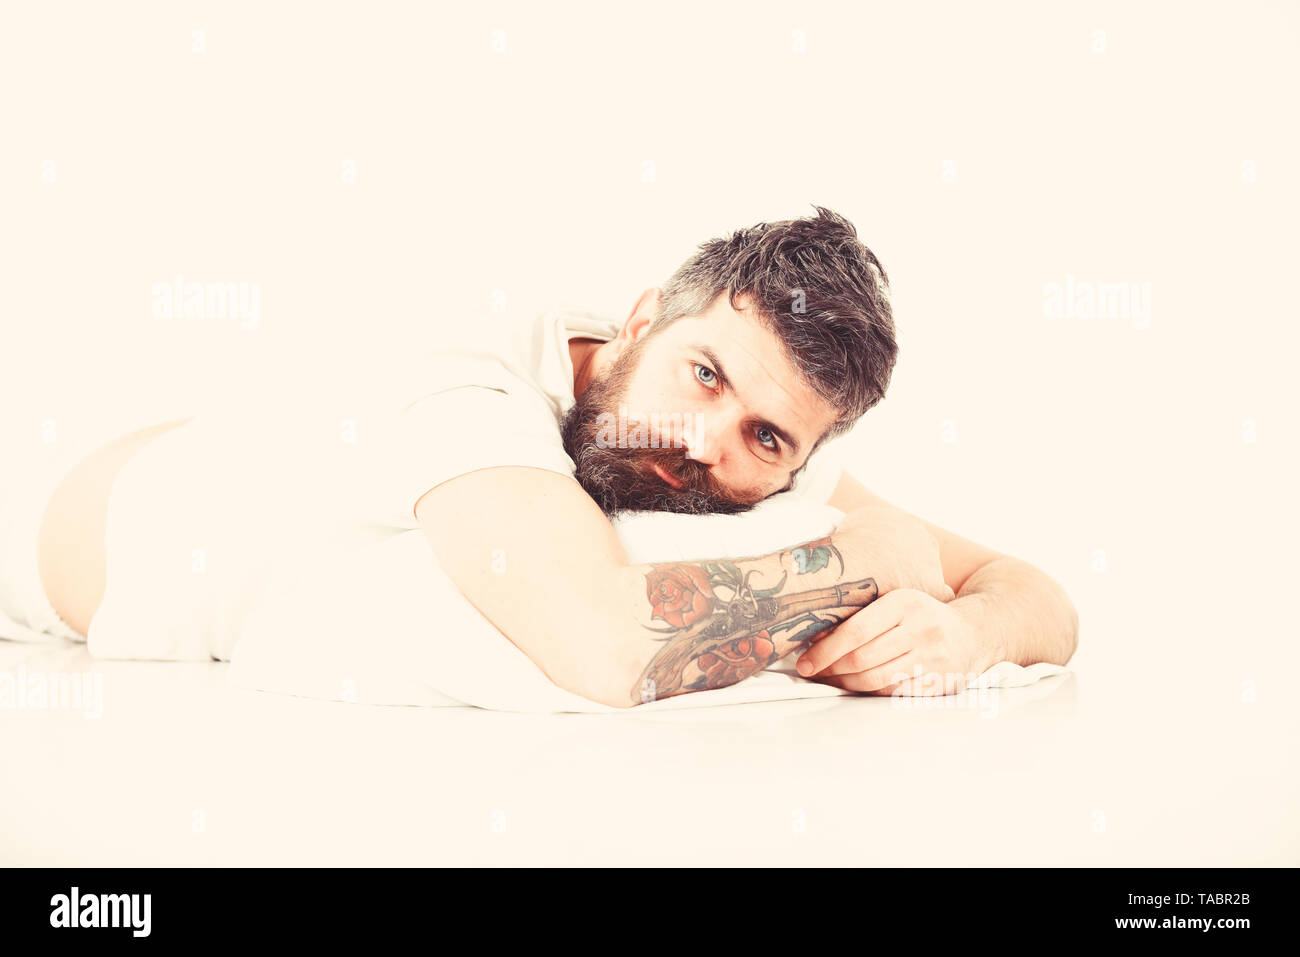 Hipster drowsy, wants to sleep. Hipster with beard not slept well. Man with sleepy face lies on pillow. Man with beard and mustache tired, white background. Bad slept concept. - Stock Image